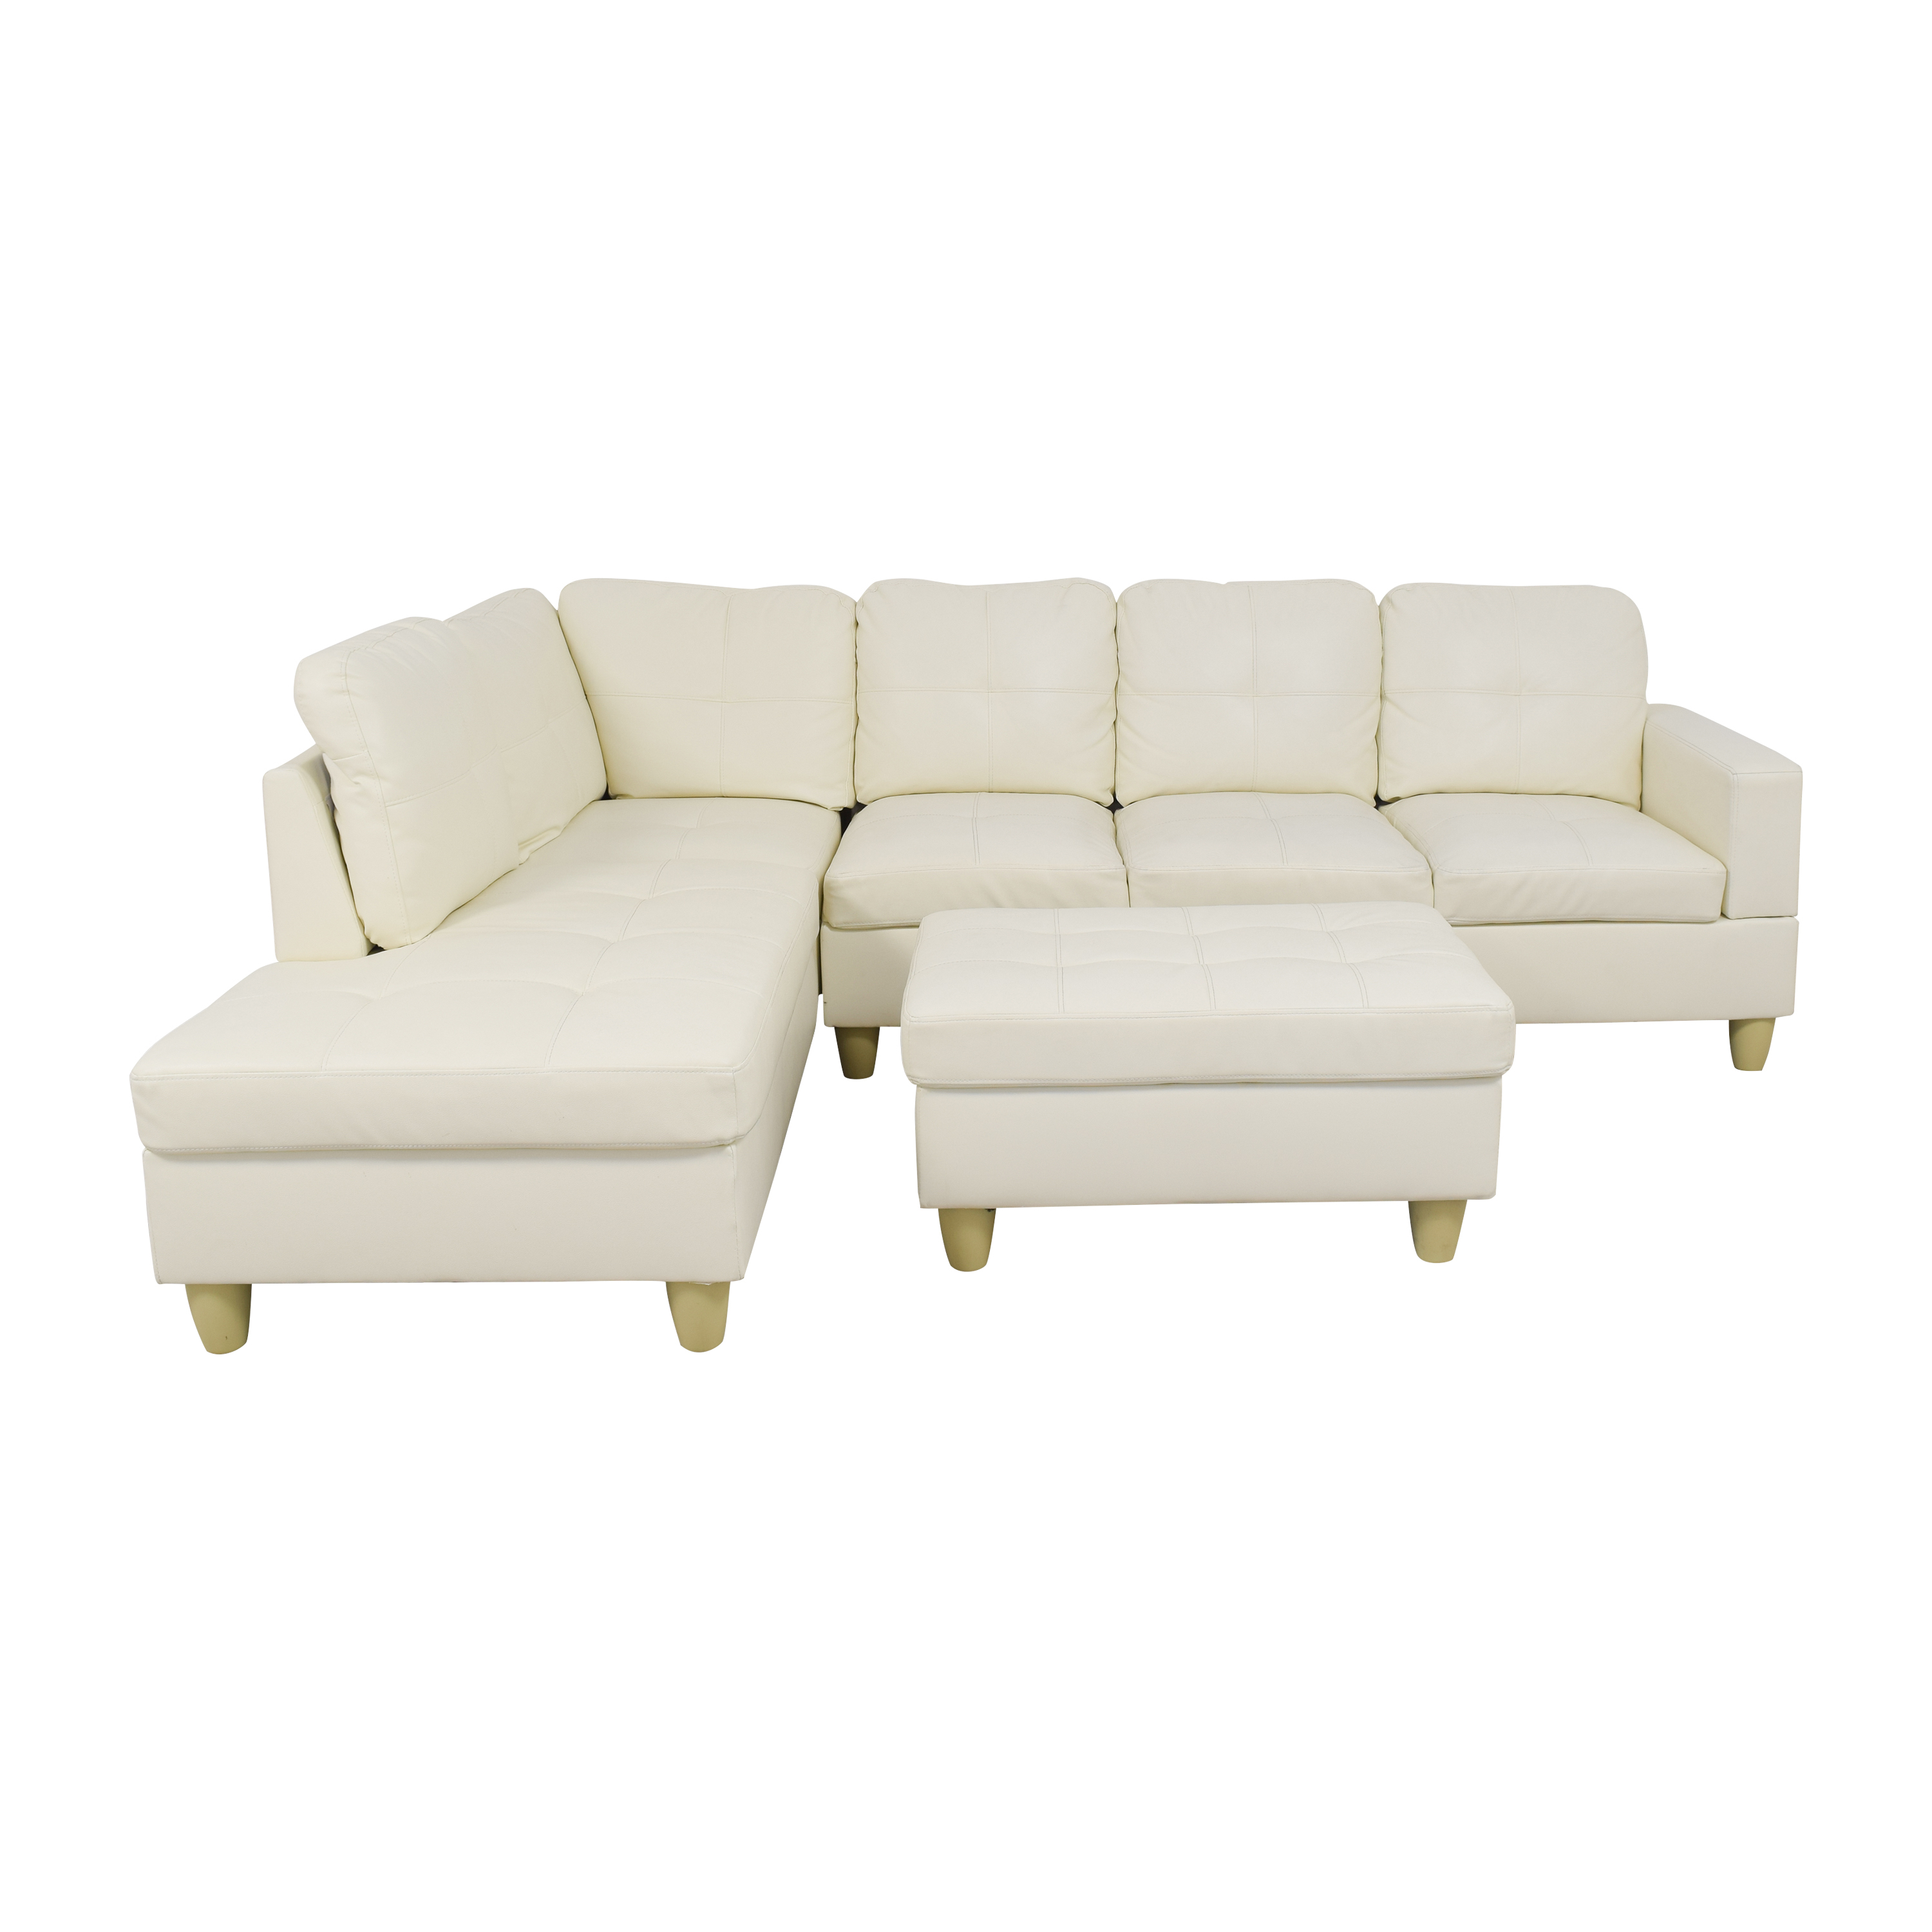 Beverly Furniture Beverly Furniture Russes Chaise Sectional Sofa with Storage Ottoman used